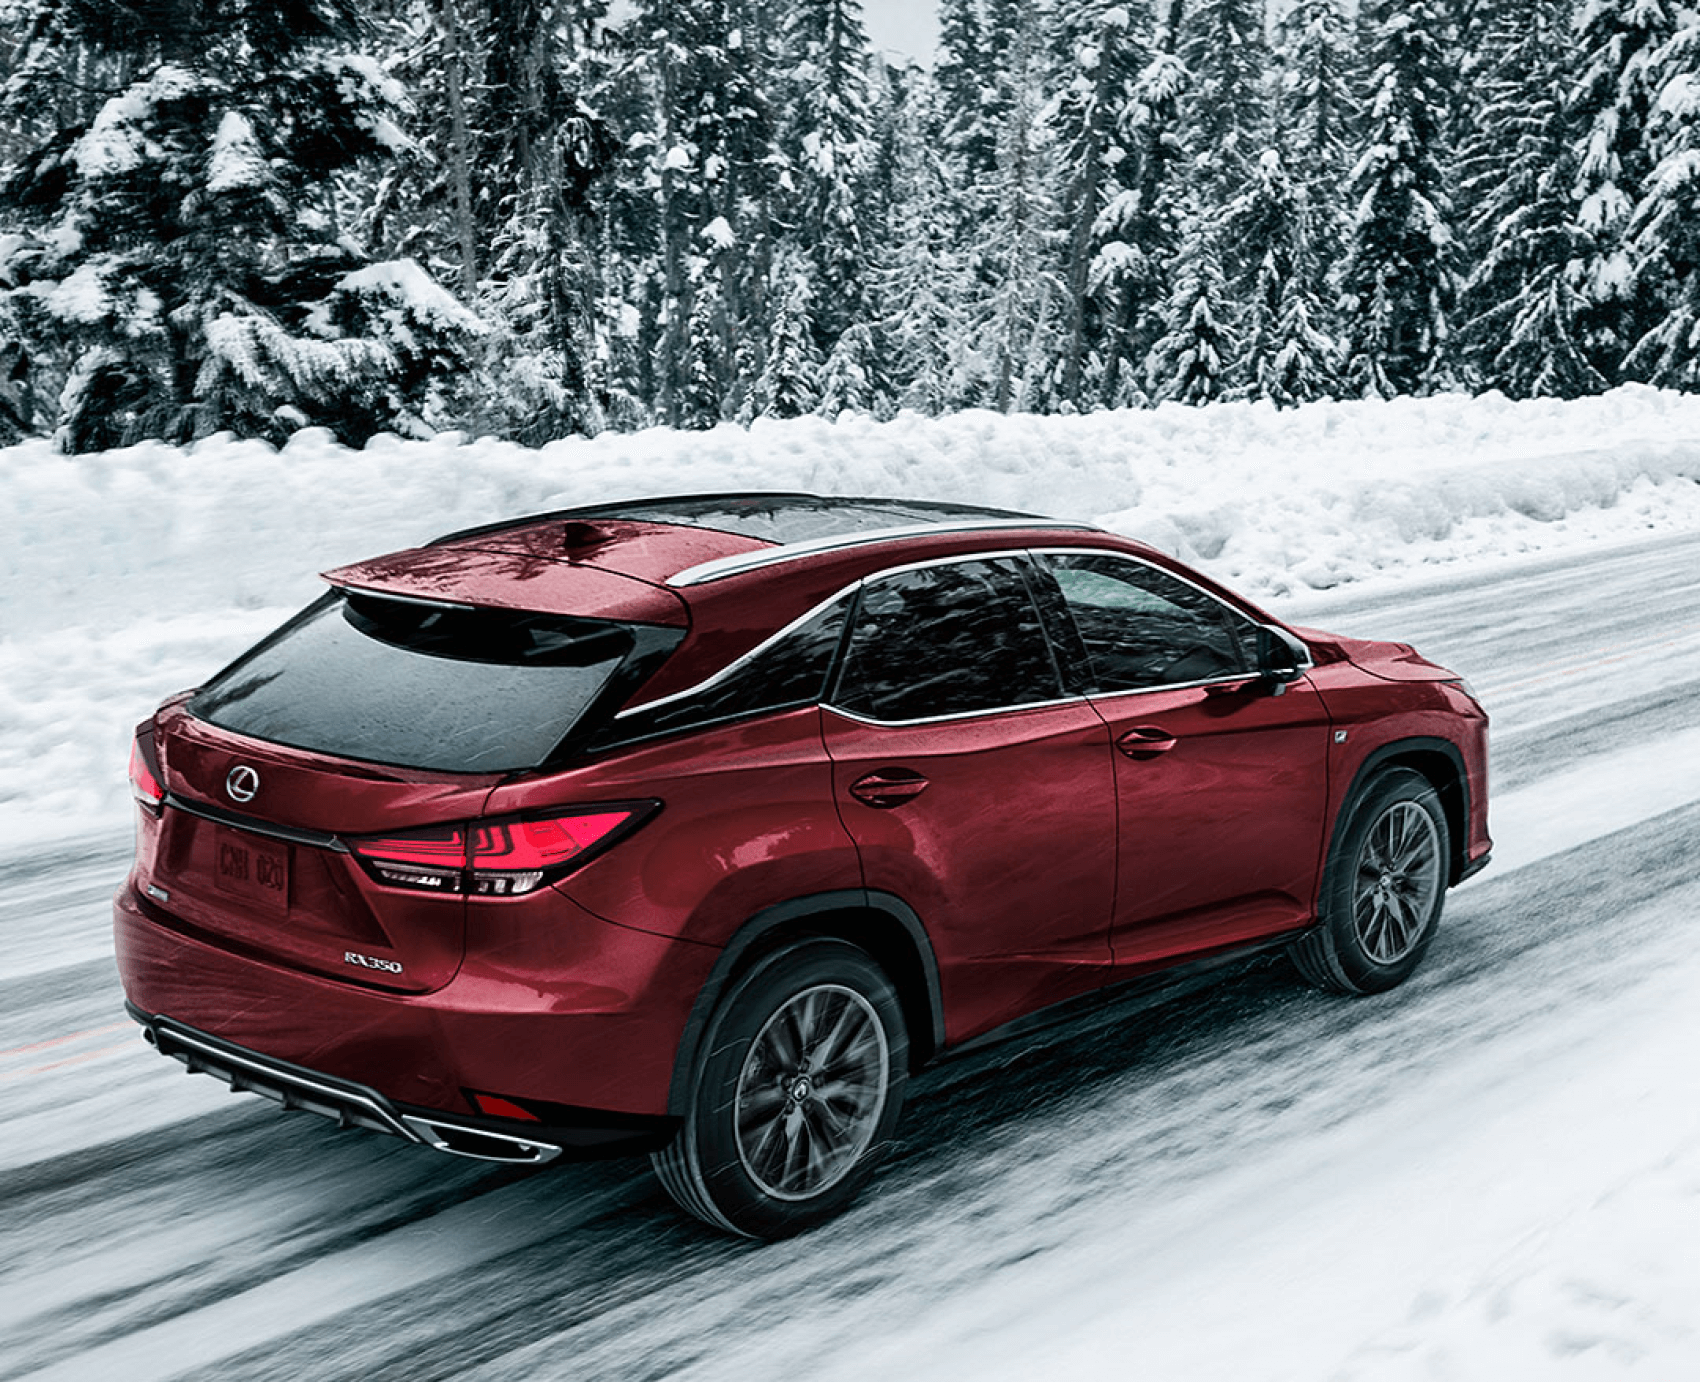 2021 Lexus RX Red Winter Snow Safety Lexus of Larchmont NY